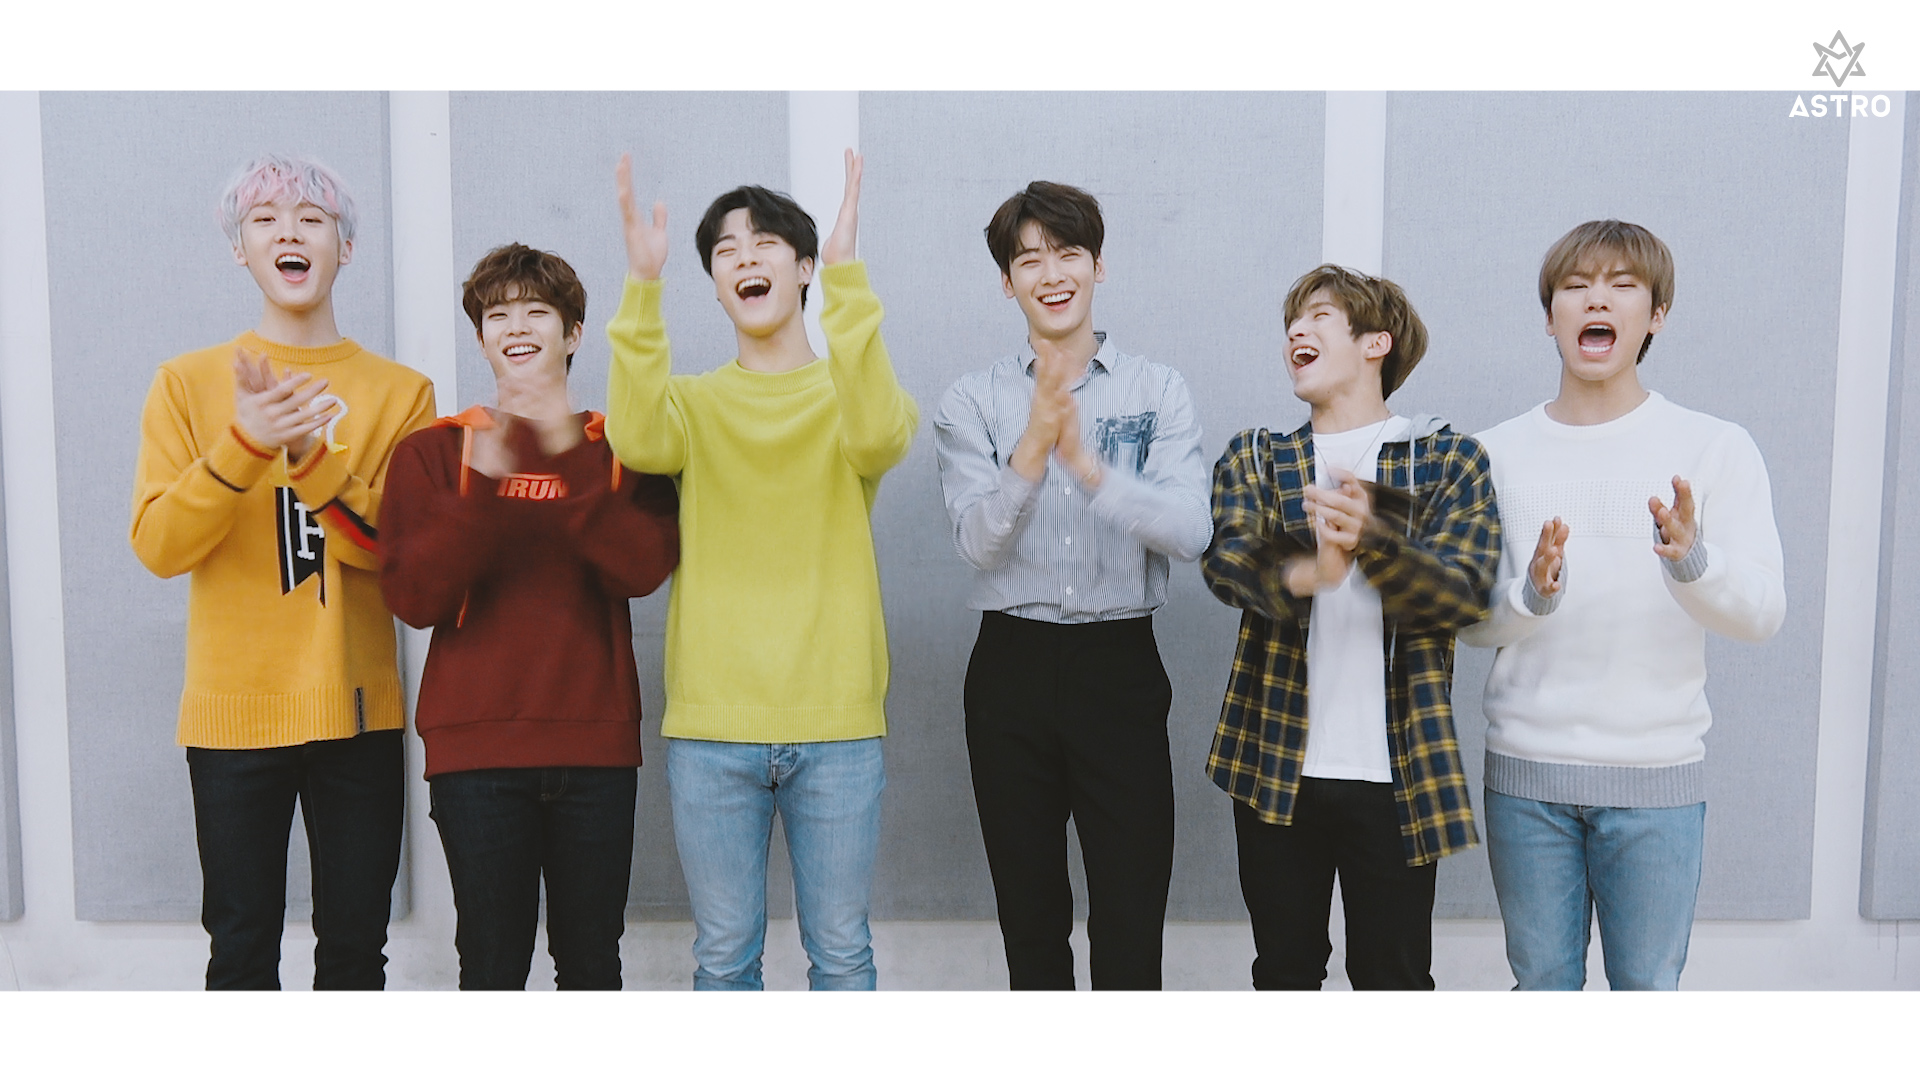 ASTRO 아스트로 - 2nd OFFICIAL FAN CLUB 'AROHA'